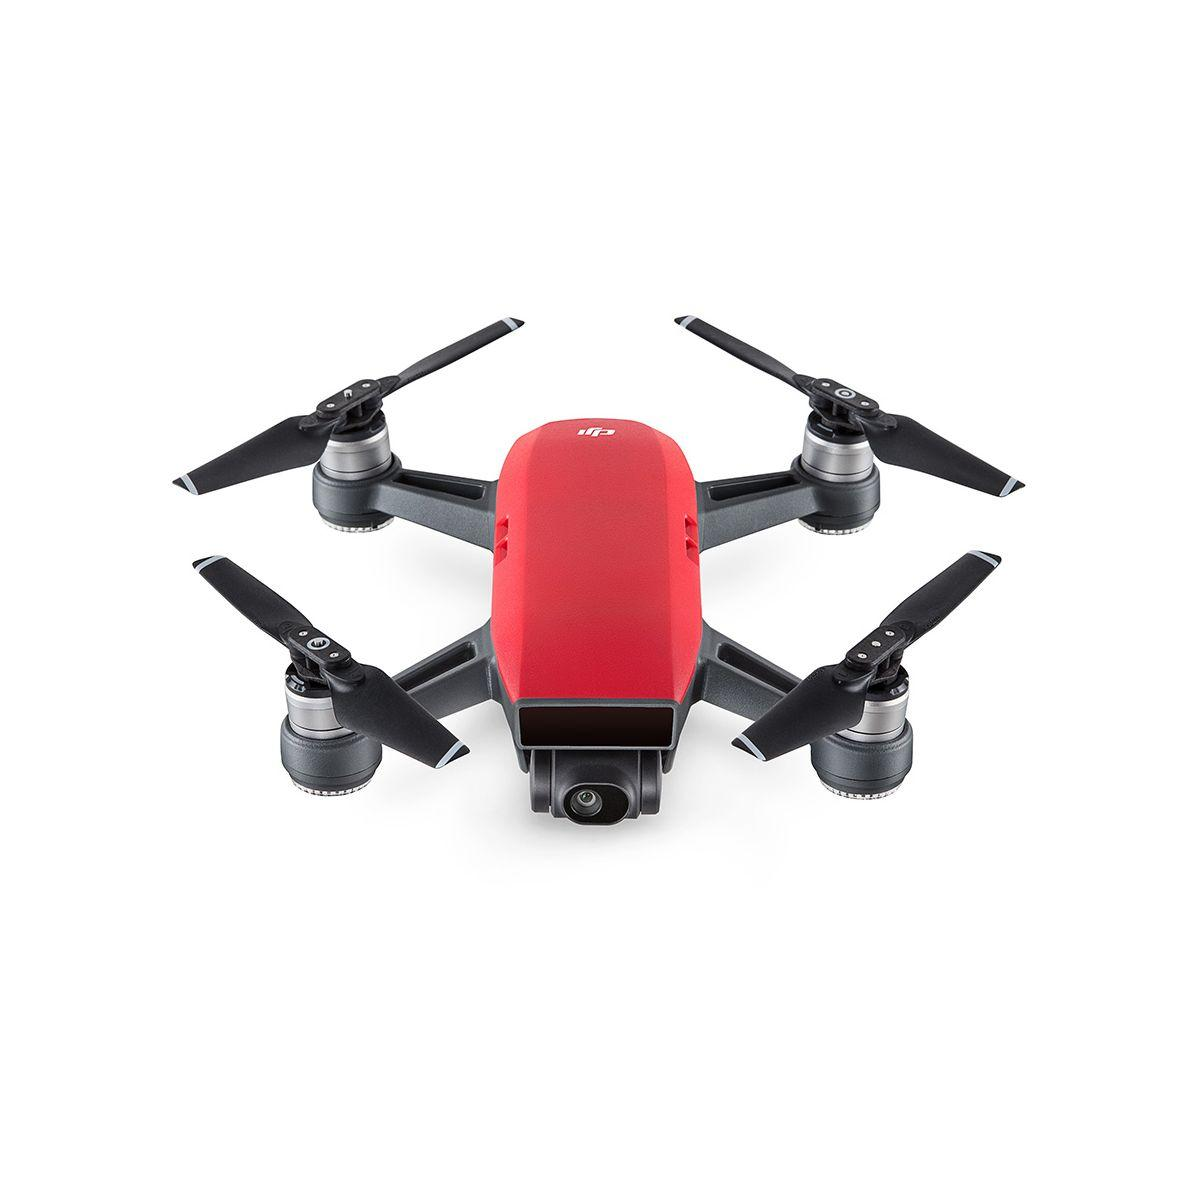 Drone dji spark fly more combo rouge - 10% de remise imm�diate avec le code : fete10 (photo)